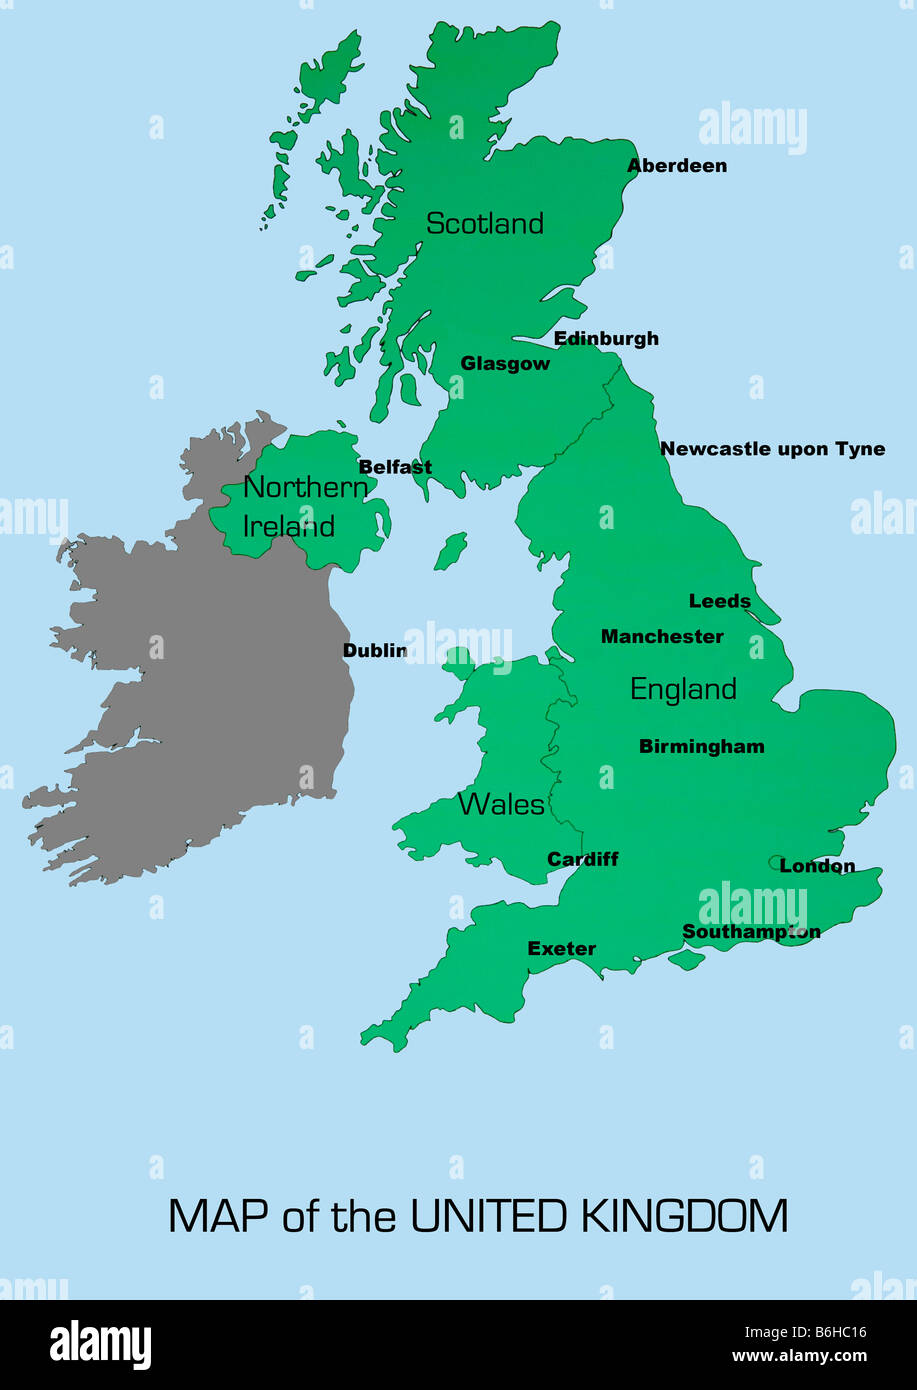 UK map showing England Scotland Wales and